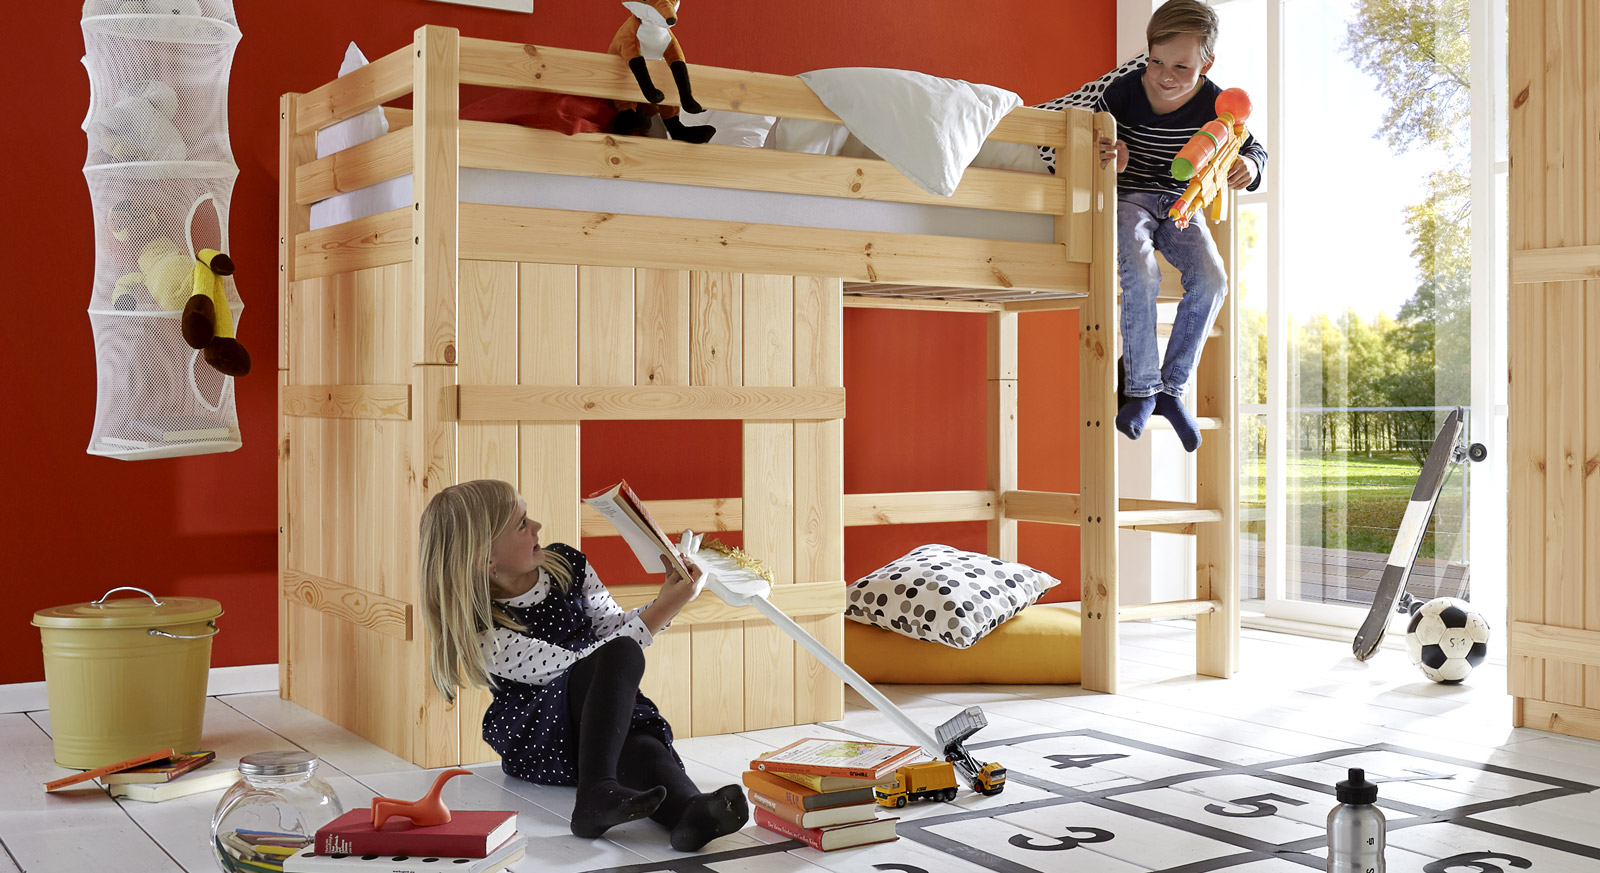 h tten hochbett mit spielhaus aus kiefer kids paradise basic. Black Bedroom Furniture Sets. Home Design Ideas